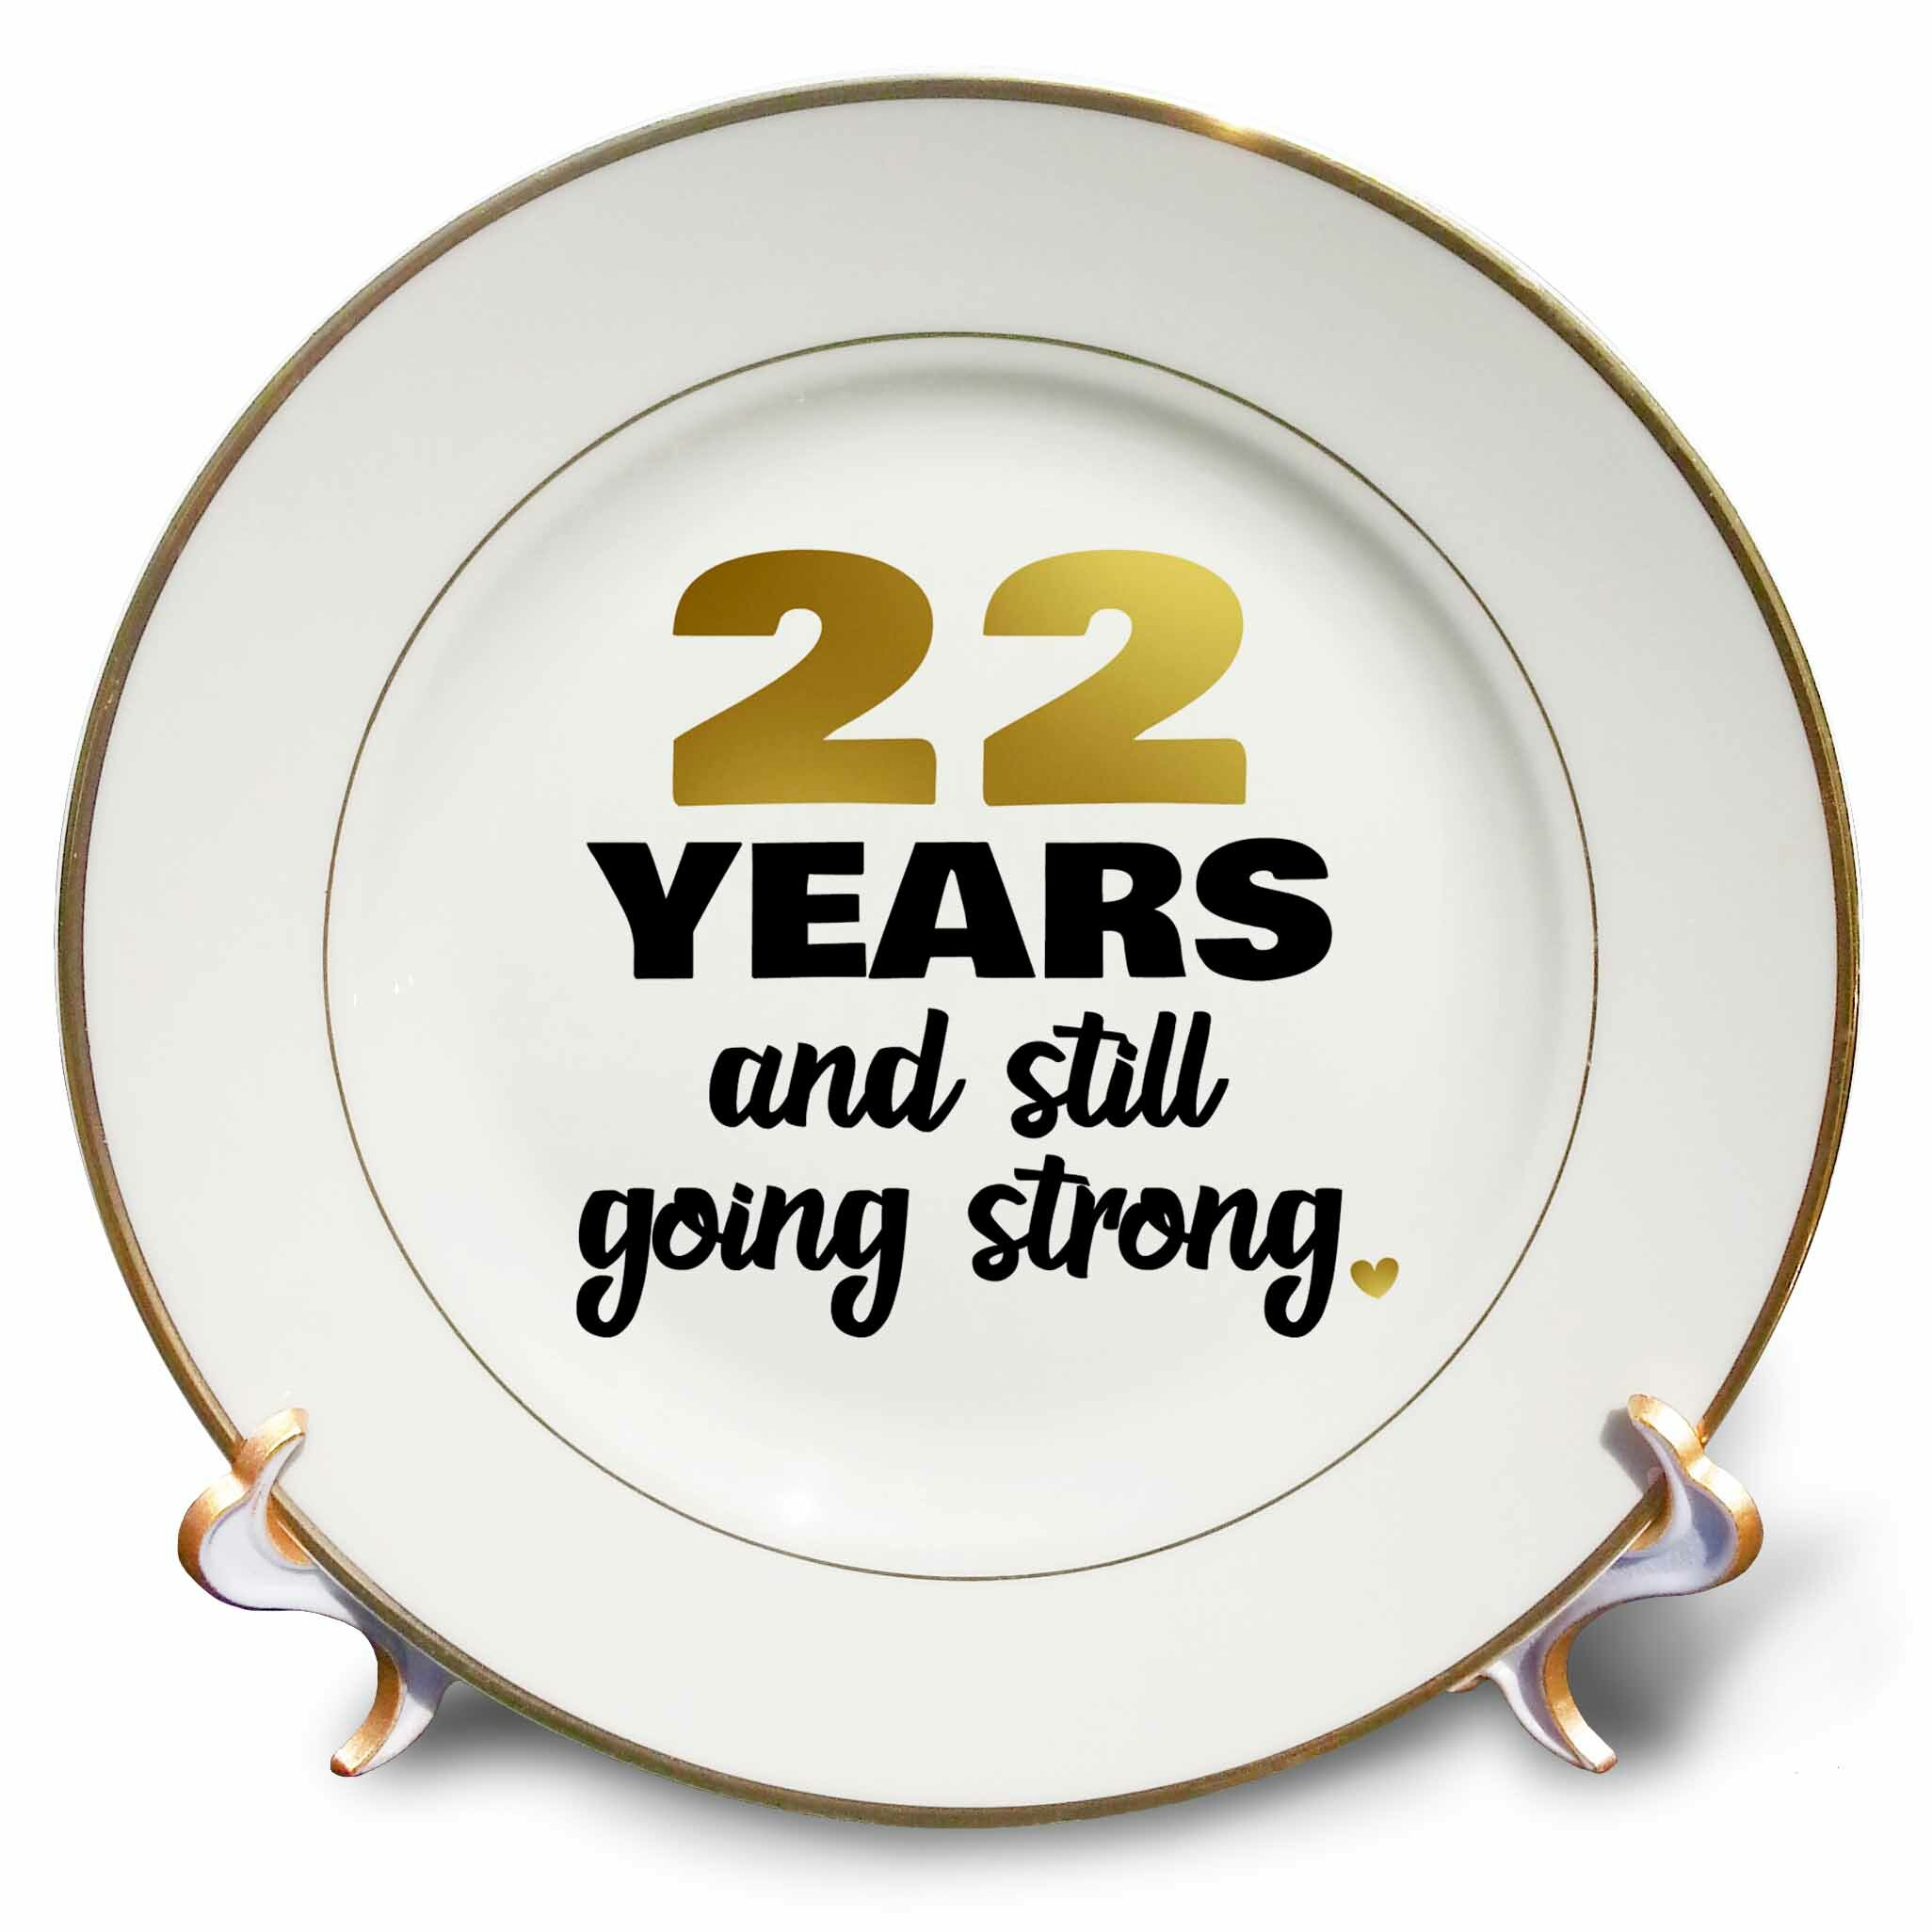 22nd Wedding Anniversary Gift Ideas: East Urban Home 22 Year Anniversary Still Going Strong